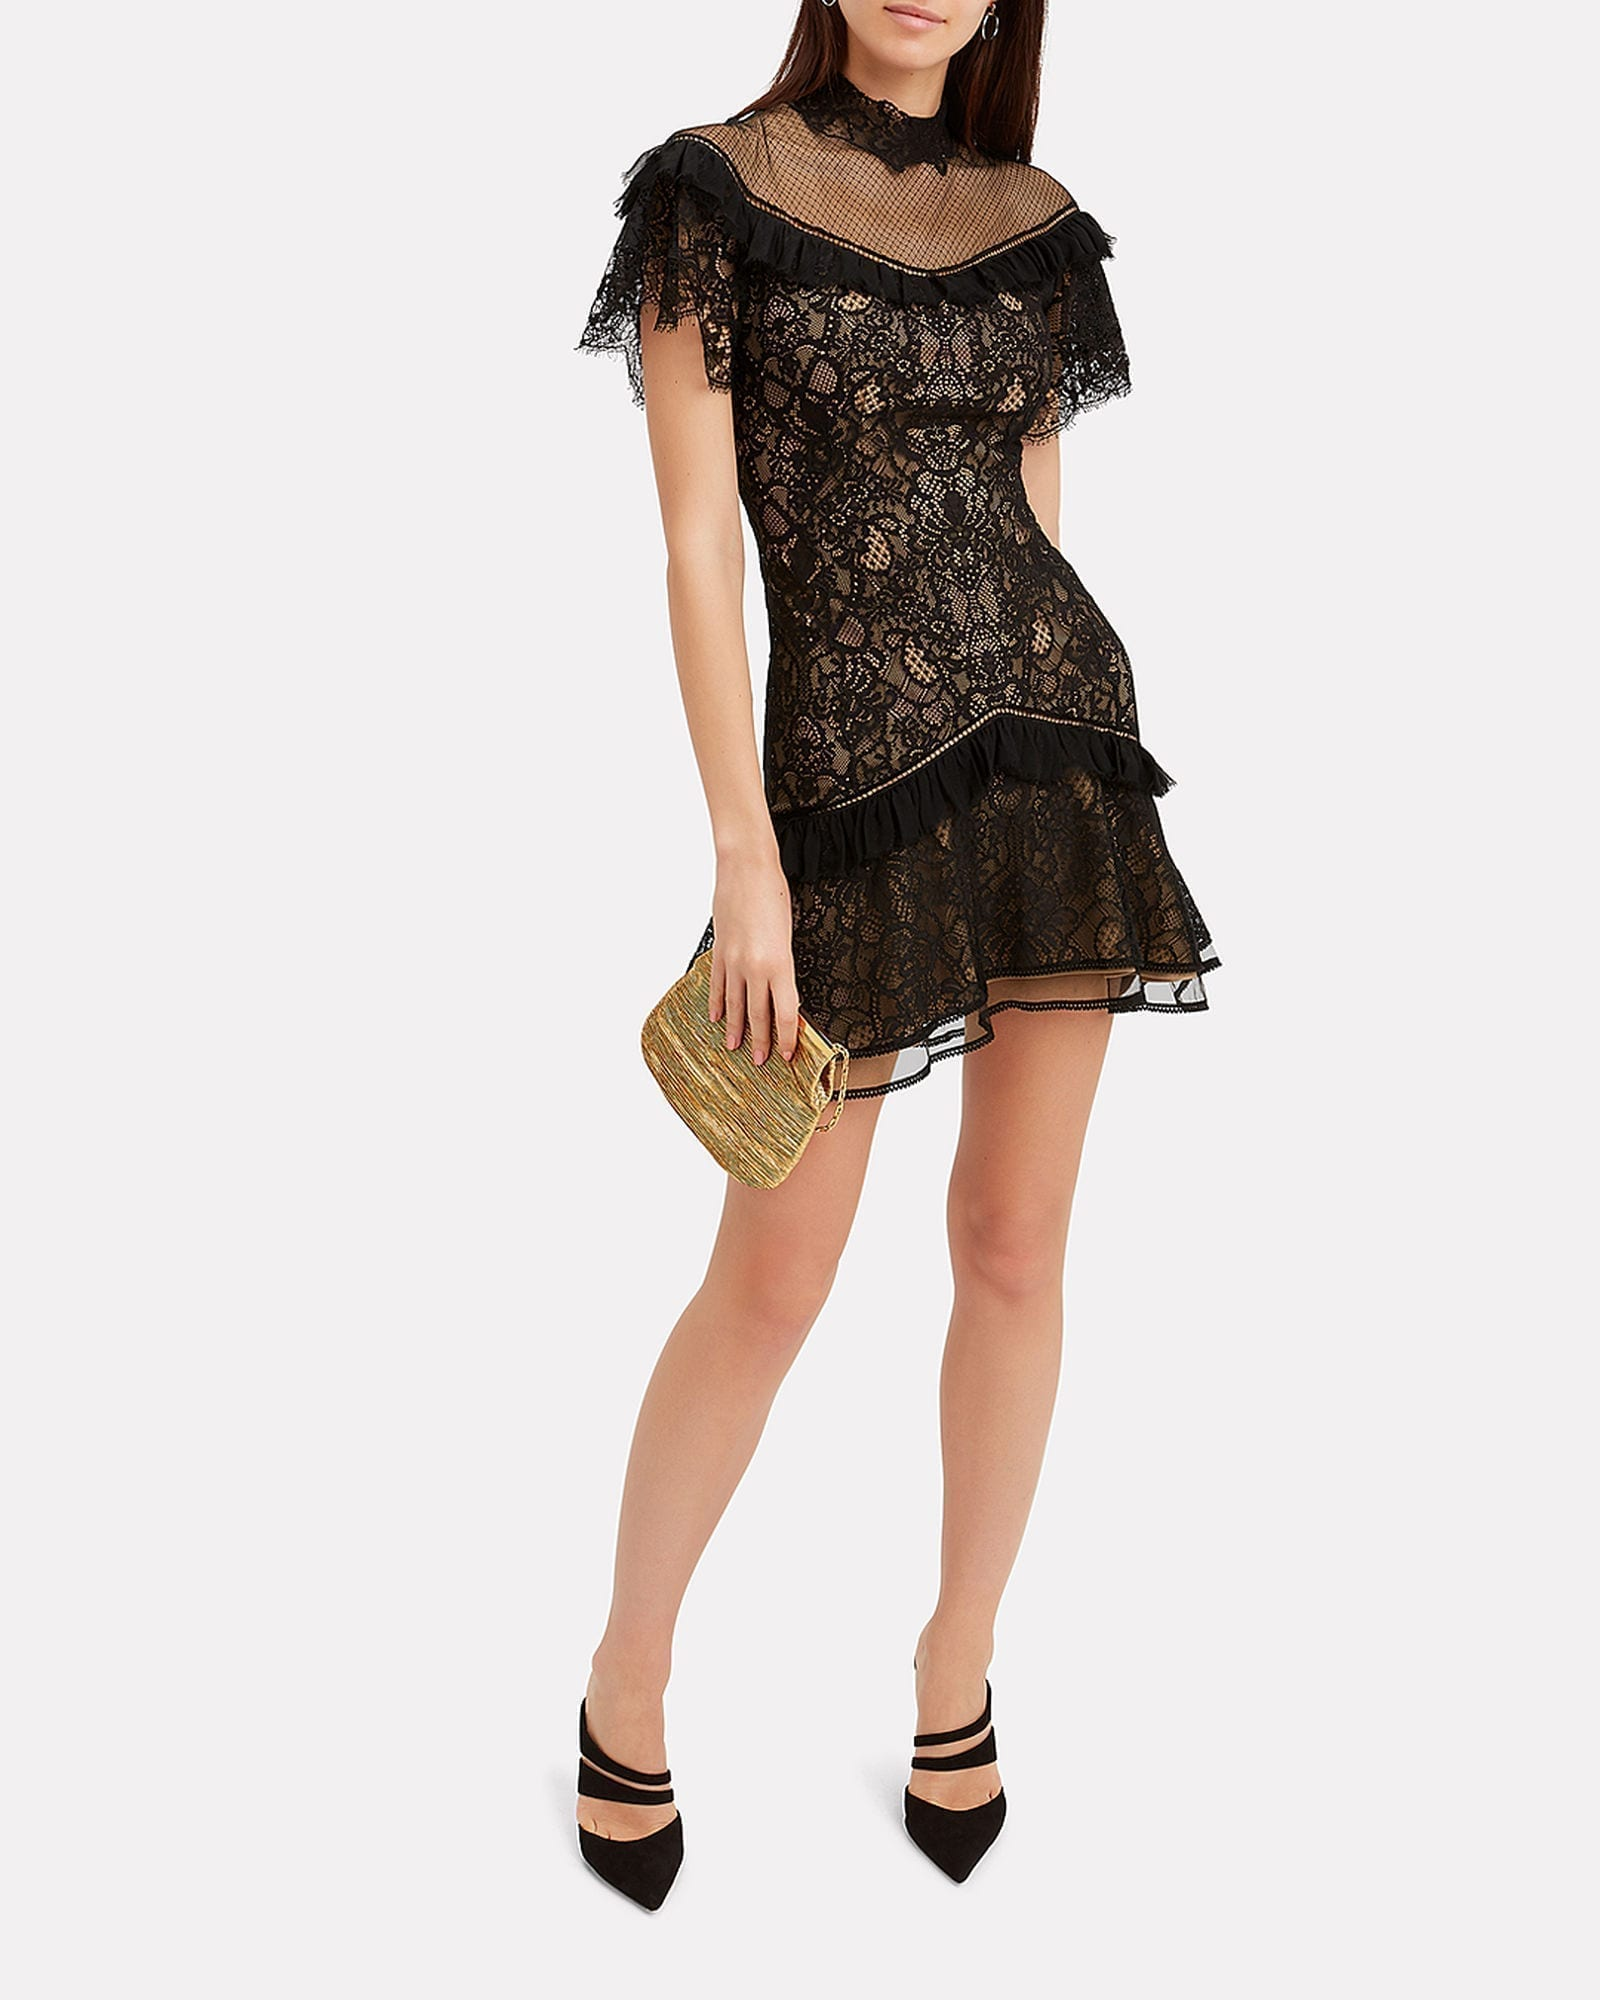 JONATHAN SIMKHAI Mixed Lace Mini Black Dress